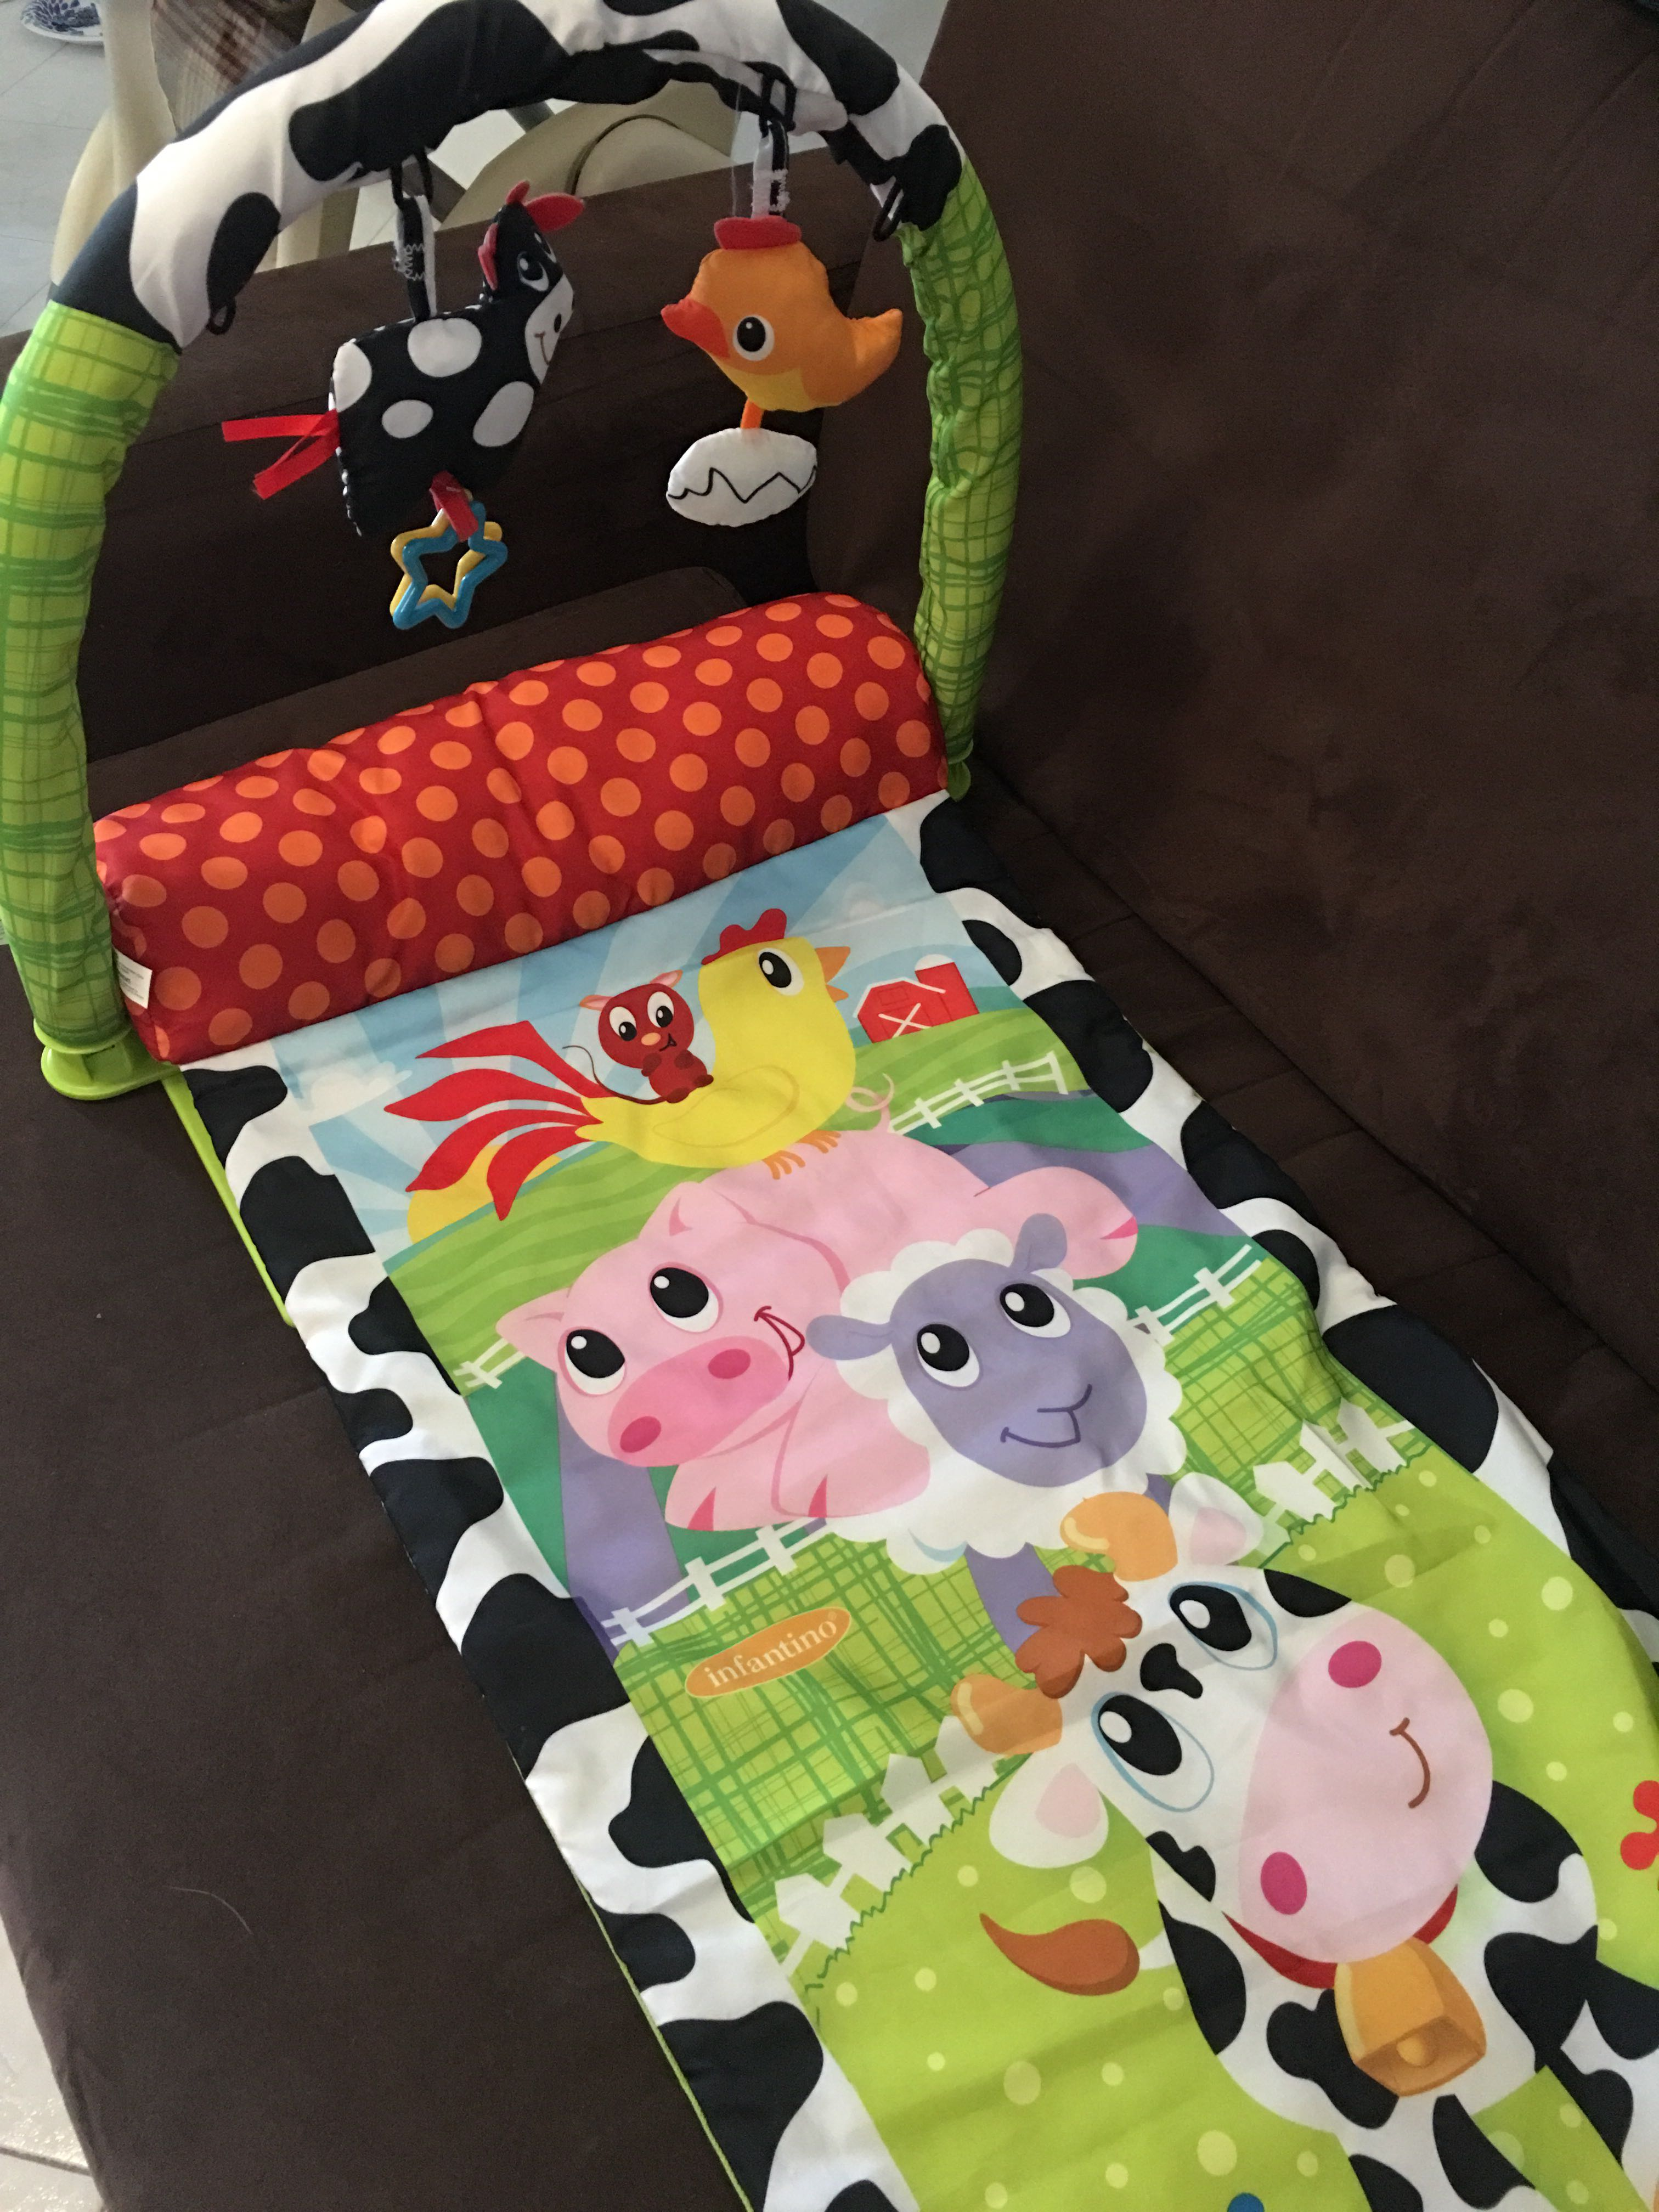 Infantino travel activity mat w/ free walker.